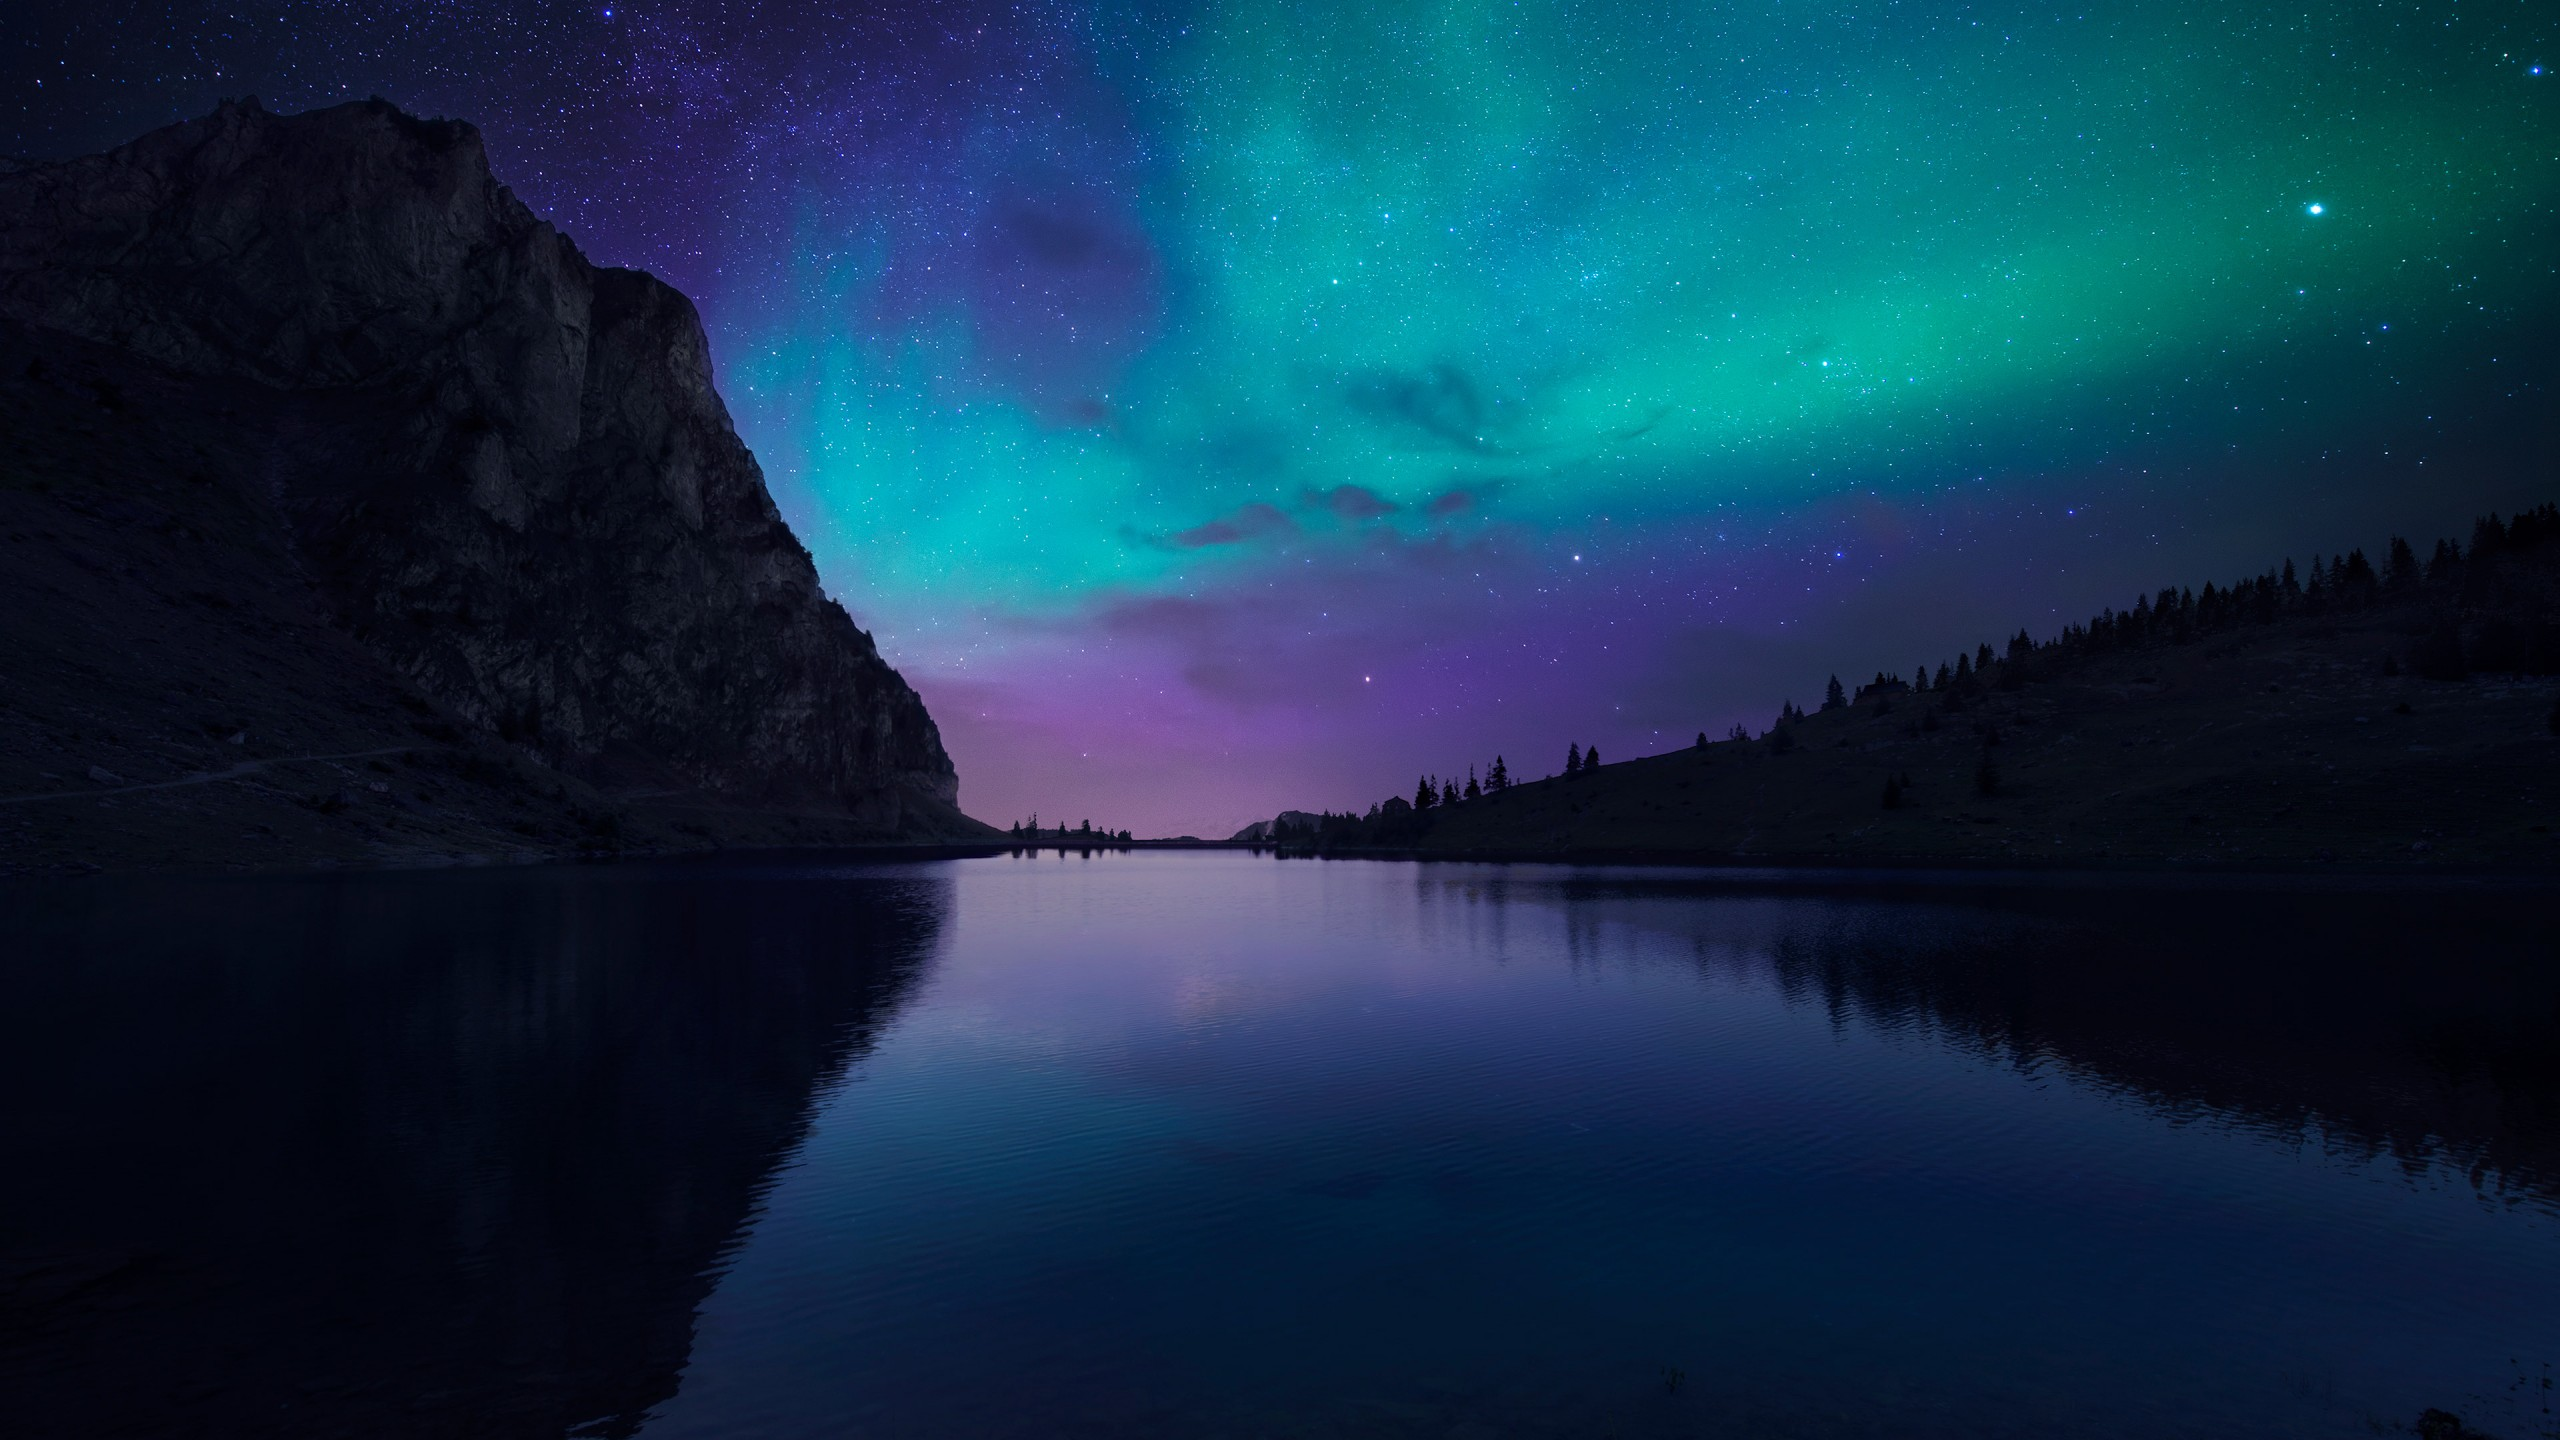 Wallpaper Lake Aurora 4k Hd Wallpaper Florida Night Sky Stars